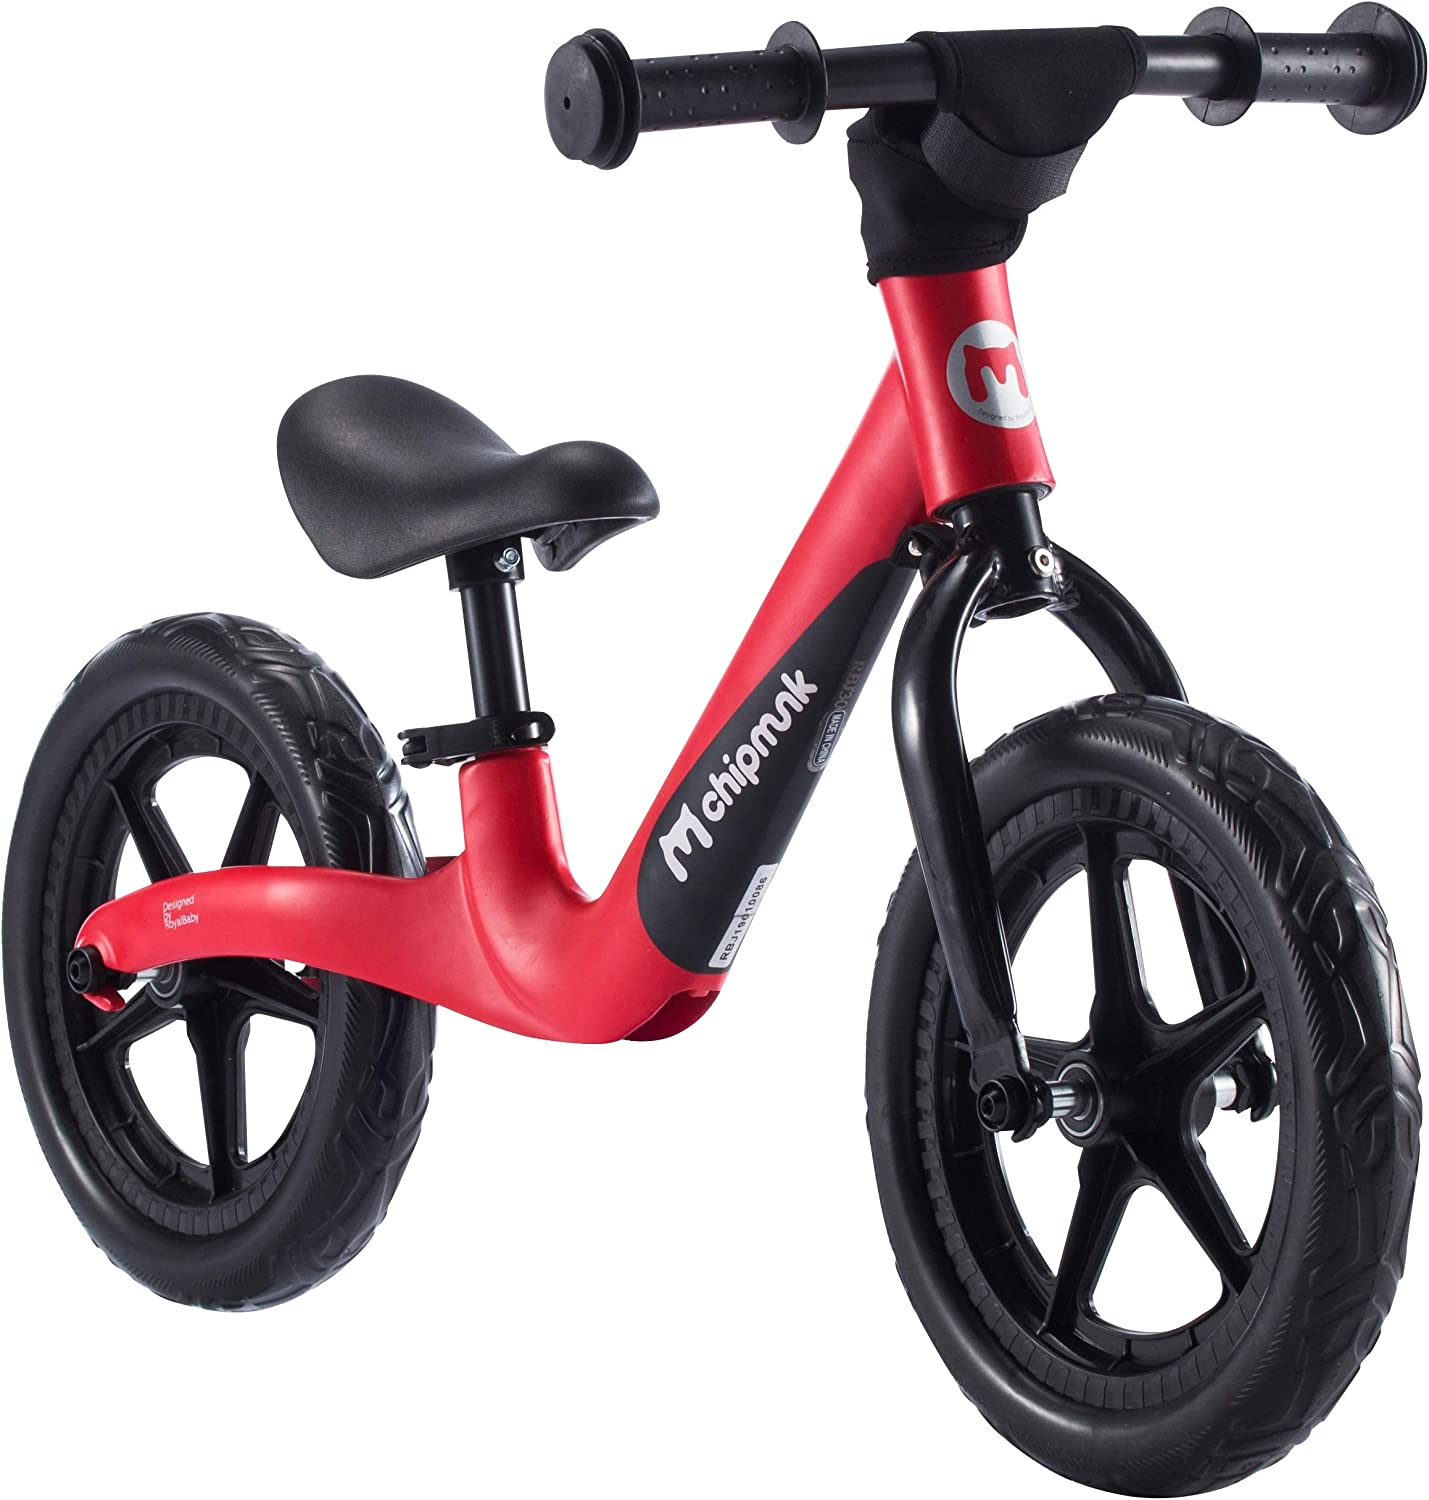 Chipmunk RoyalBaby Sport Balance Bike for 2 to 5 Years Boys and Girls EVA or Airfilled Tire No Pedal Walking Bike with Lightweight Magnesium Frame Multicolor Available